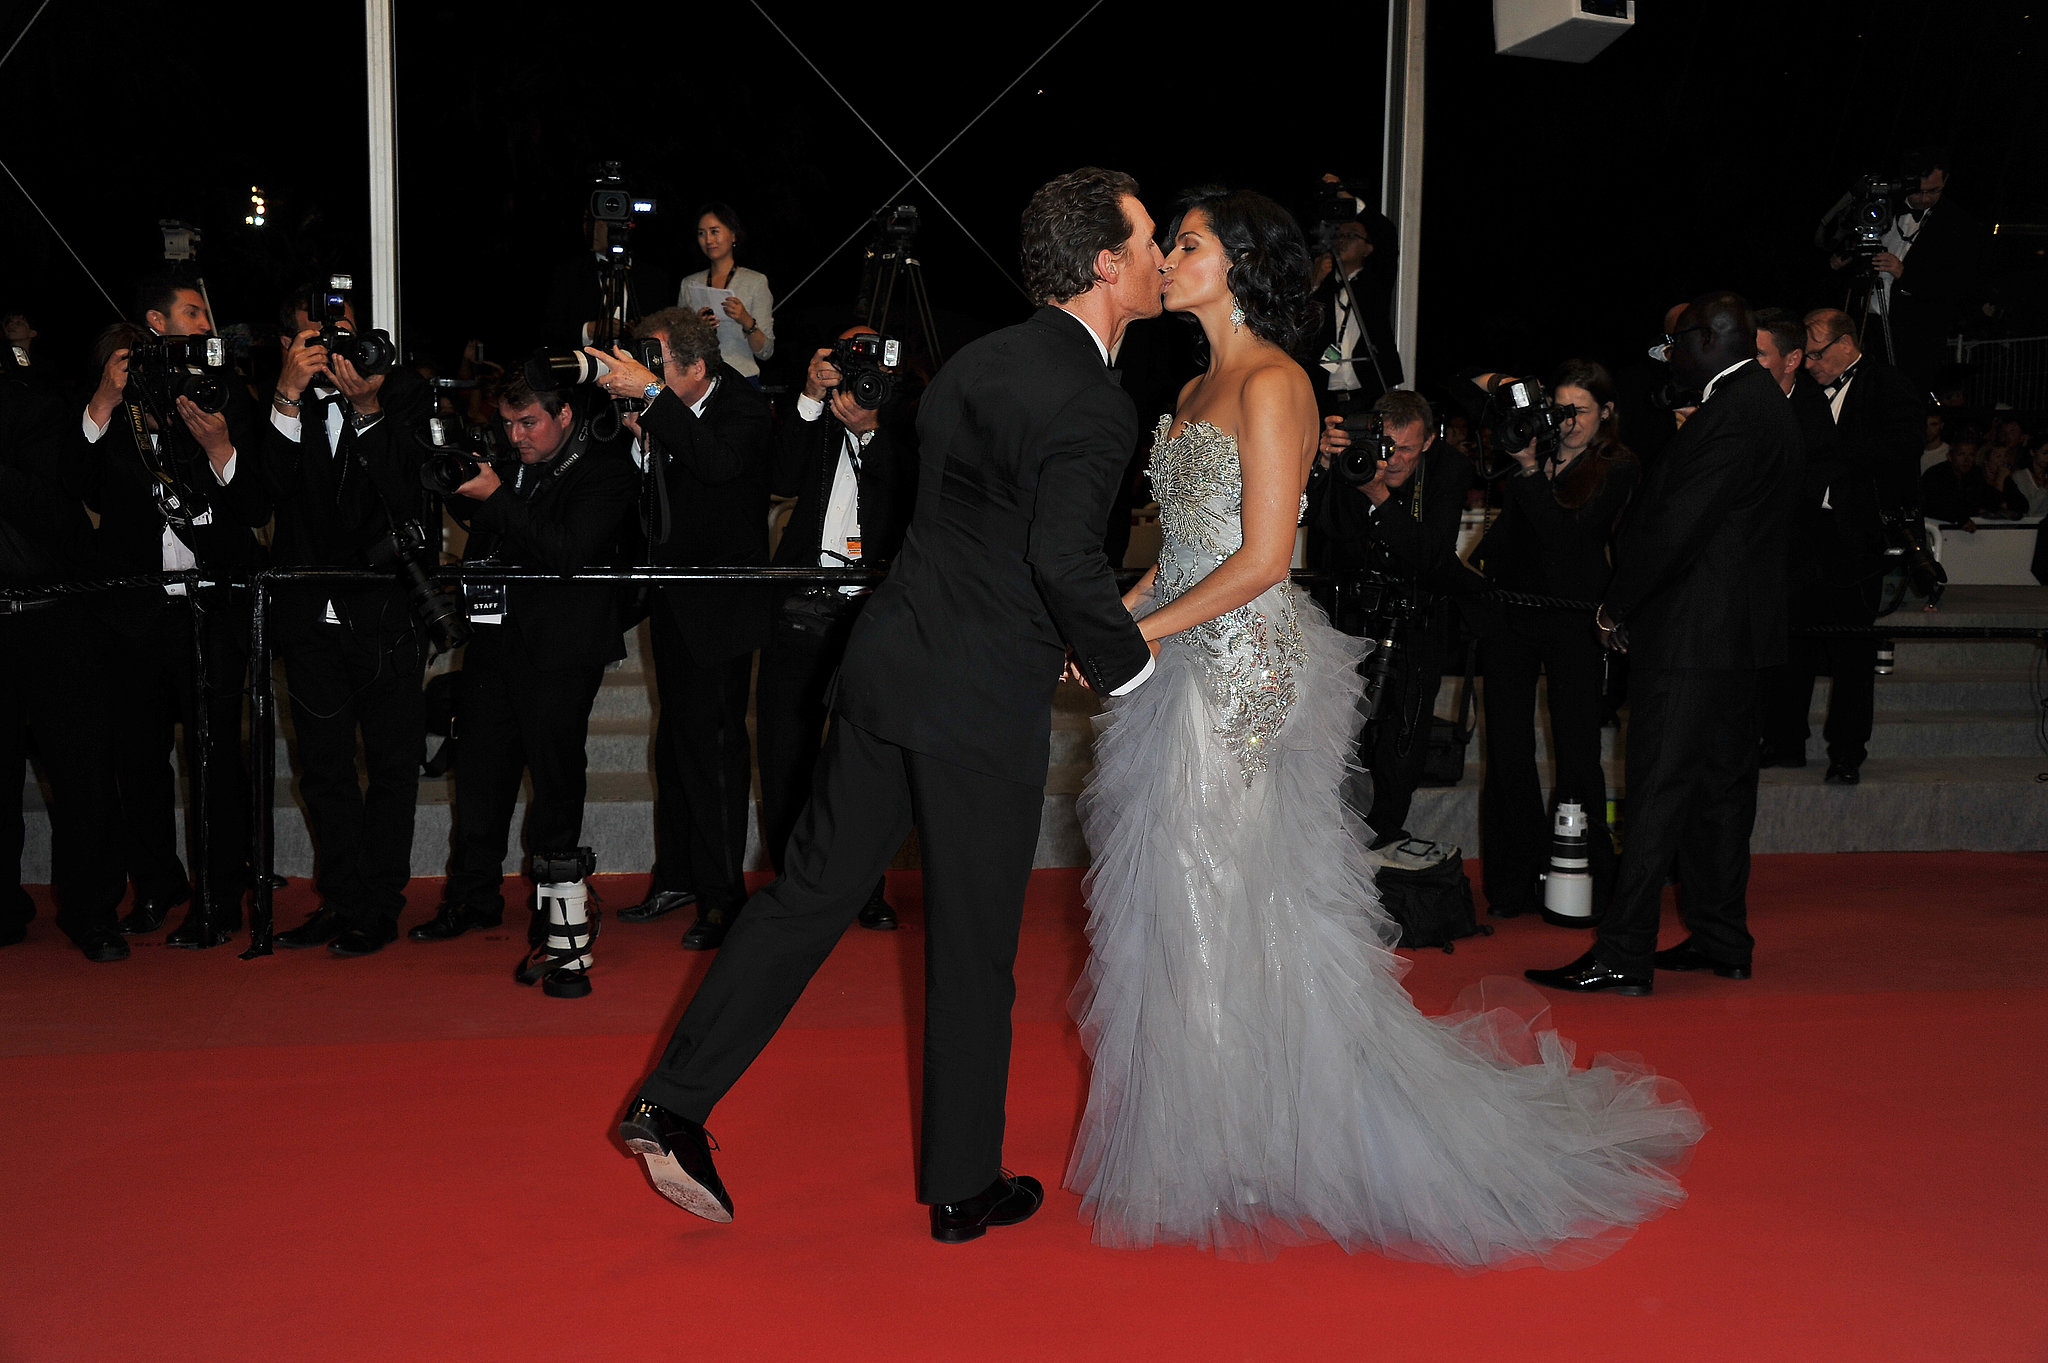 The couple stopped for a kiss at the Cannes Film Festival premiere of Mud in May 2012.